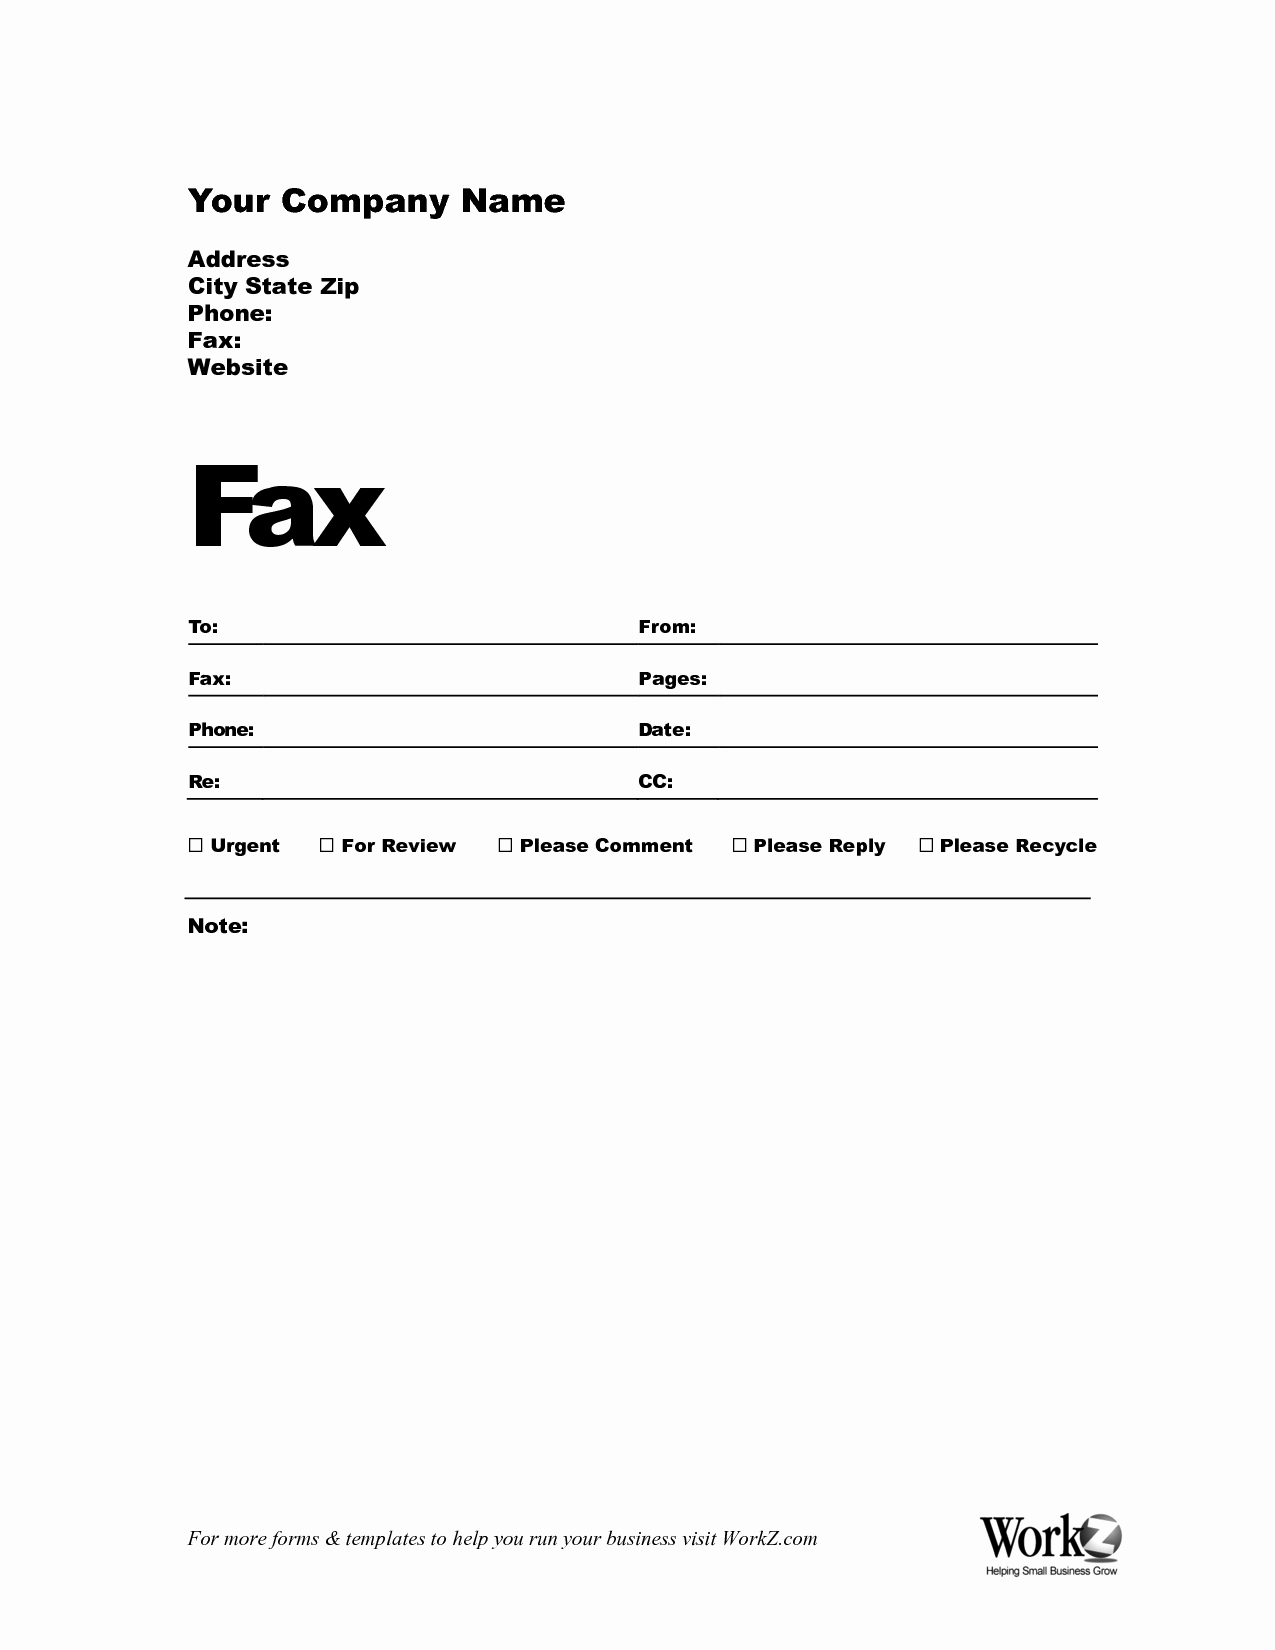 Professional Fax Cover Sheet Best Of Professional Fax Cover Sheet